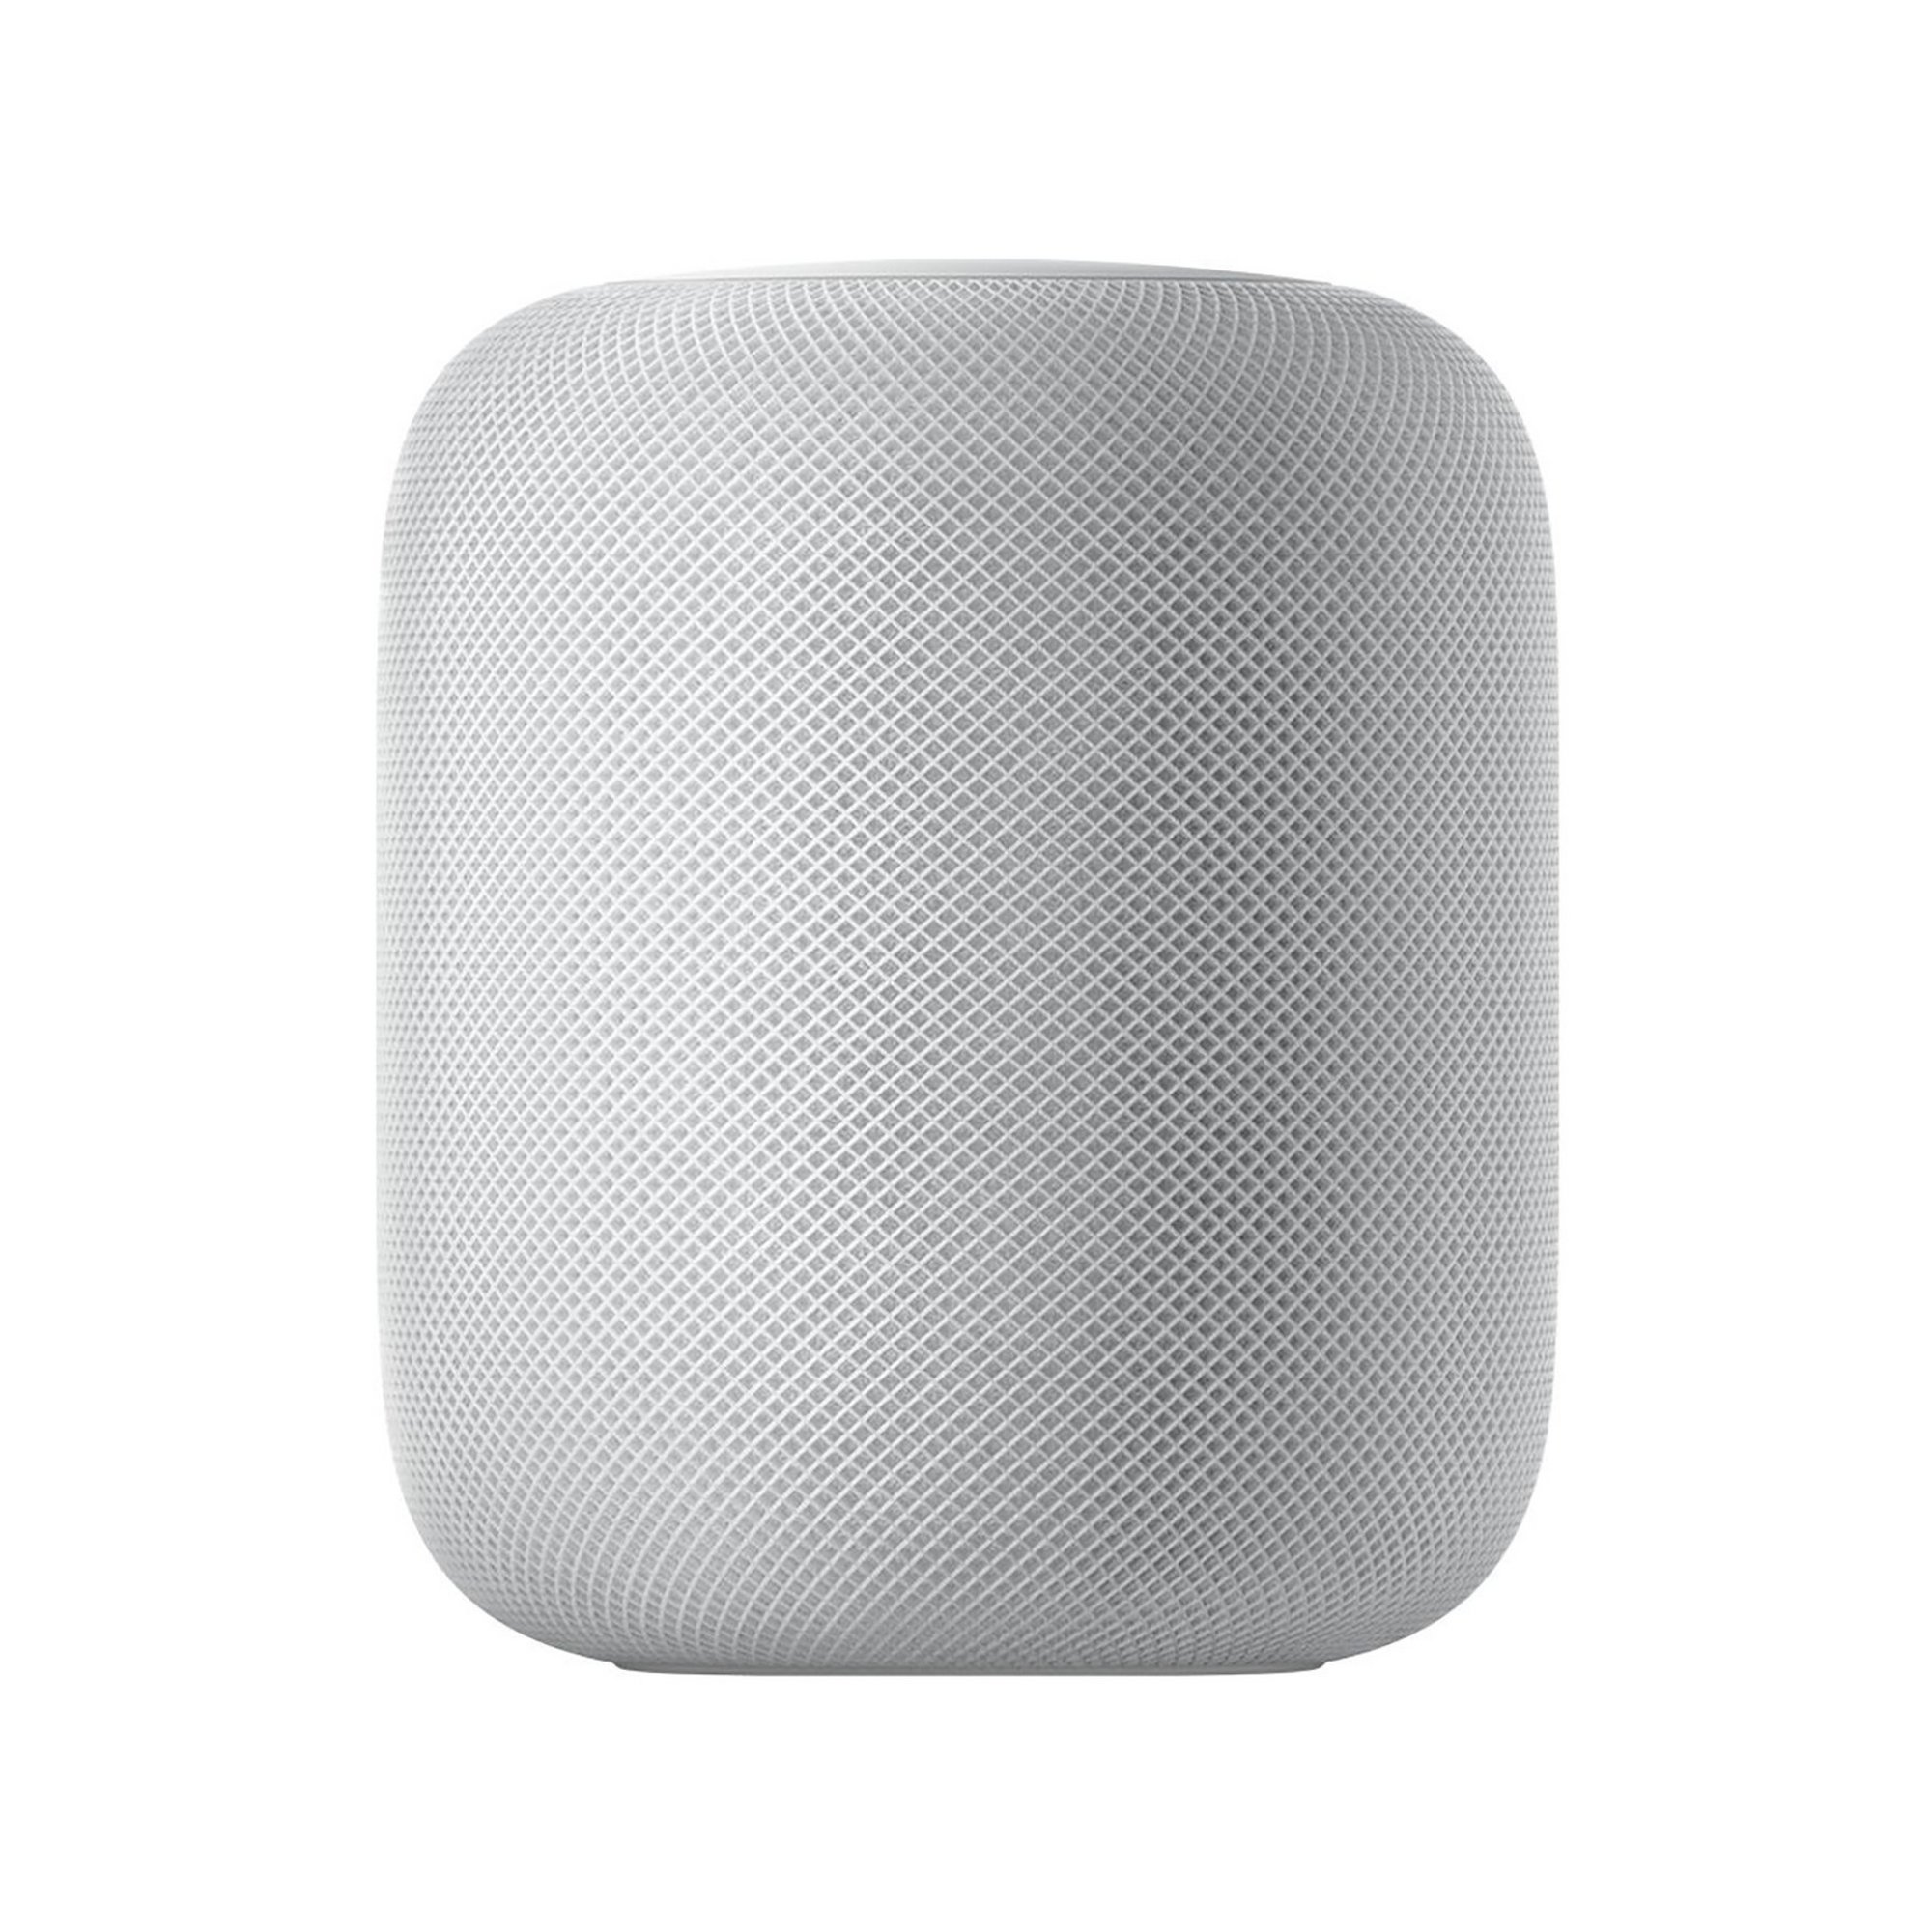 Image of Apple HomePod Smart Speaker